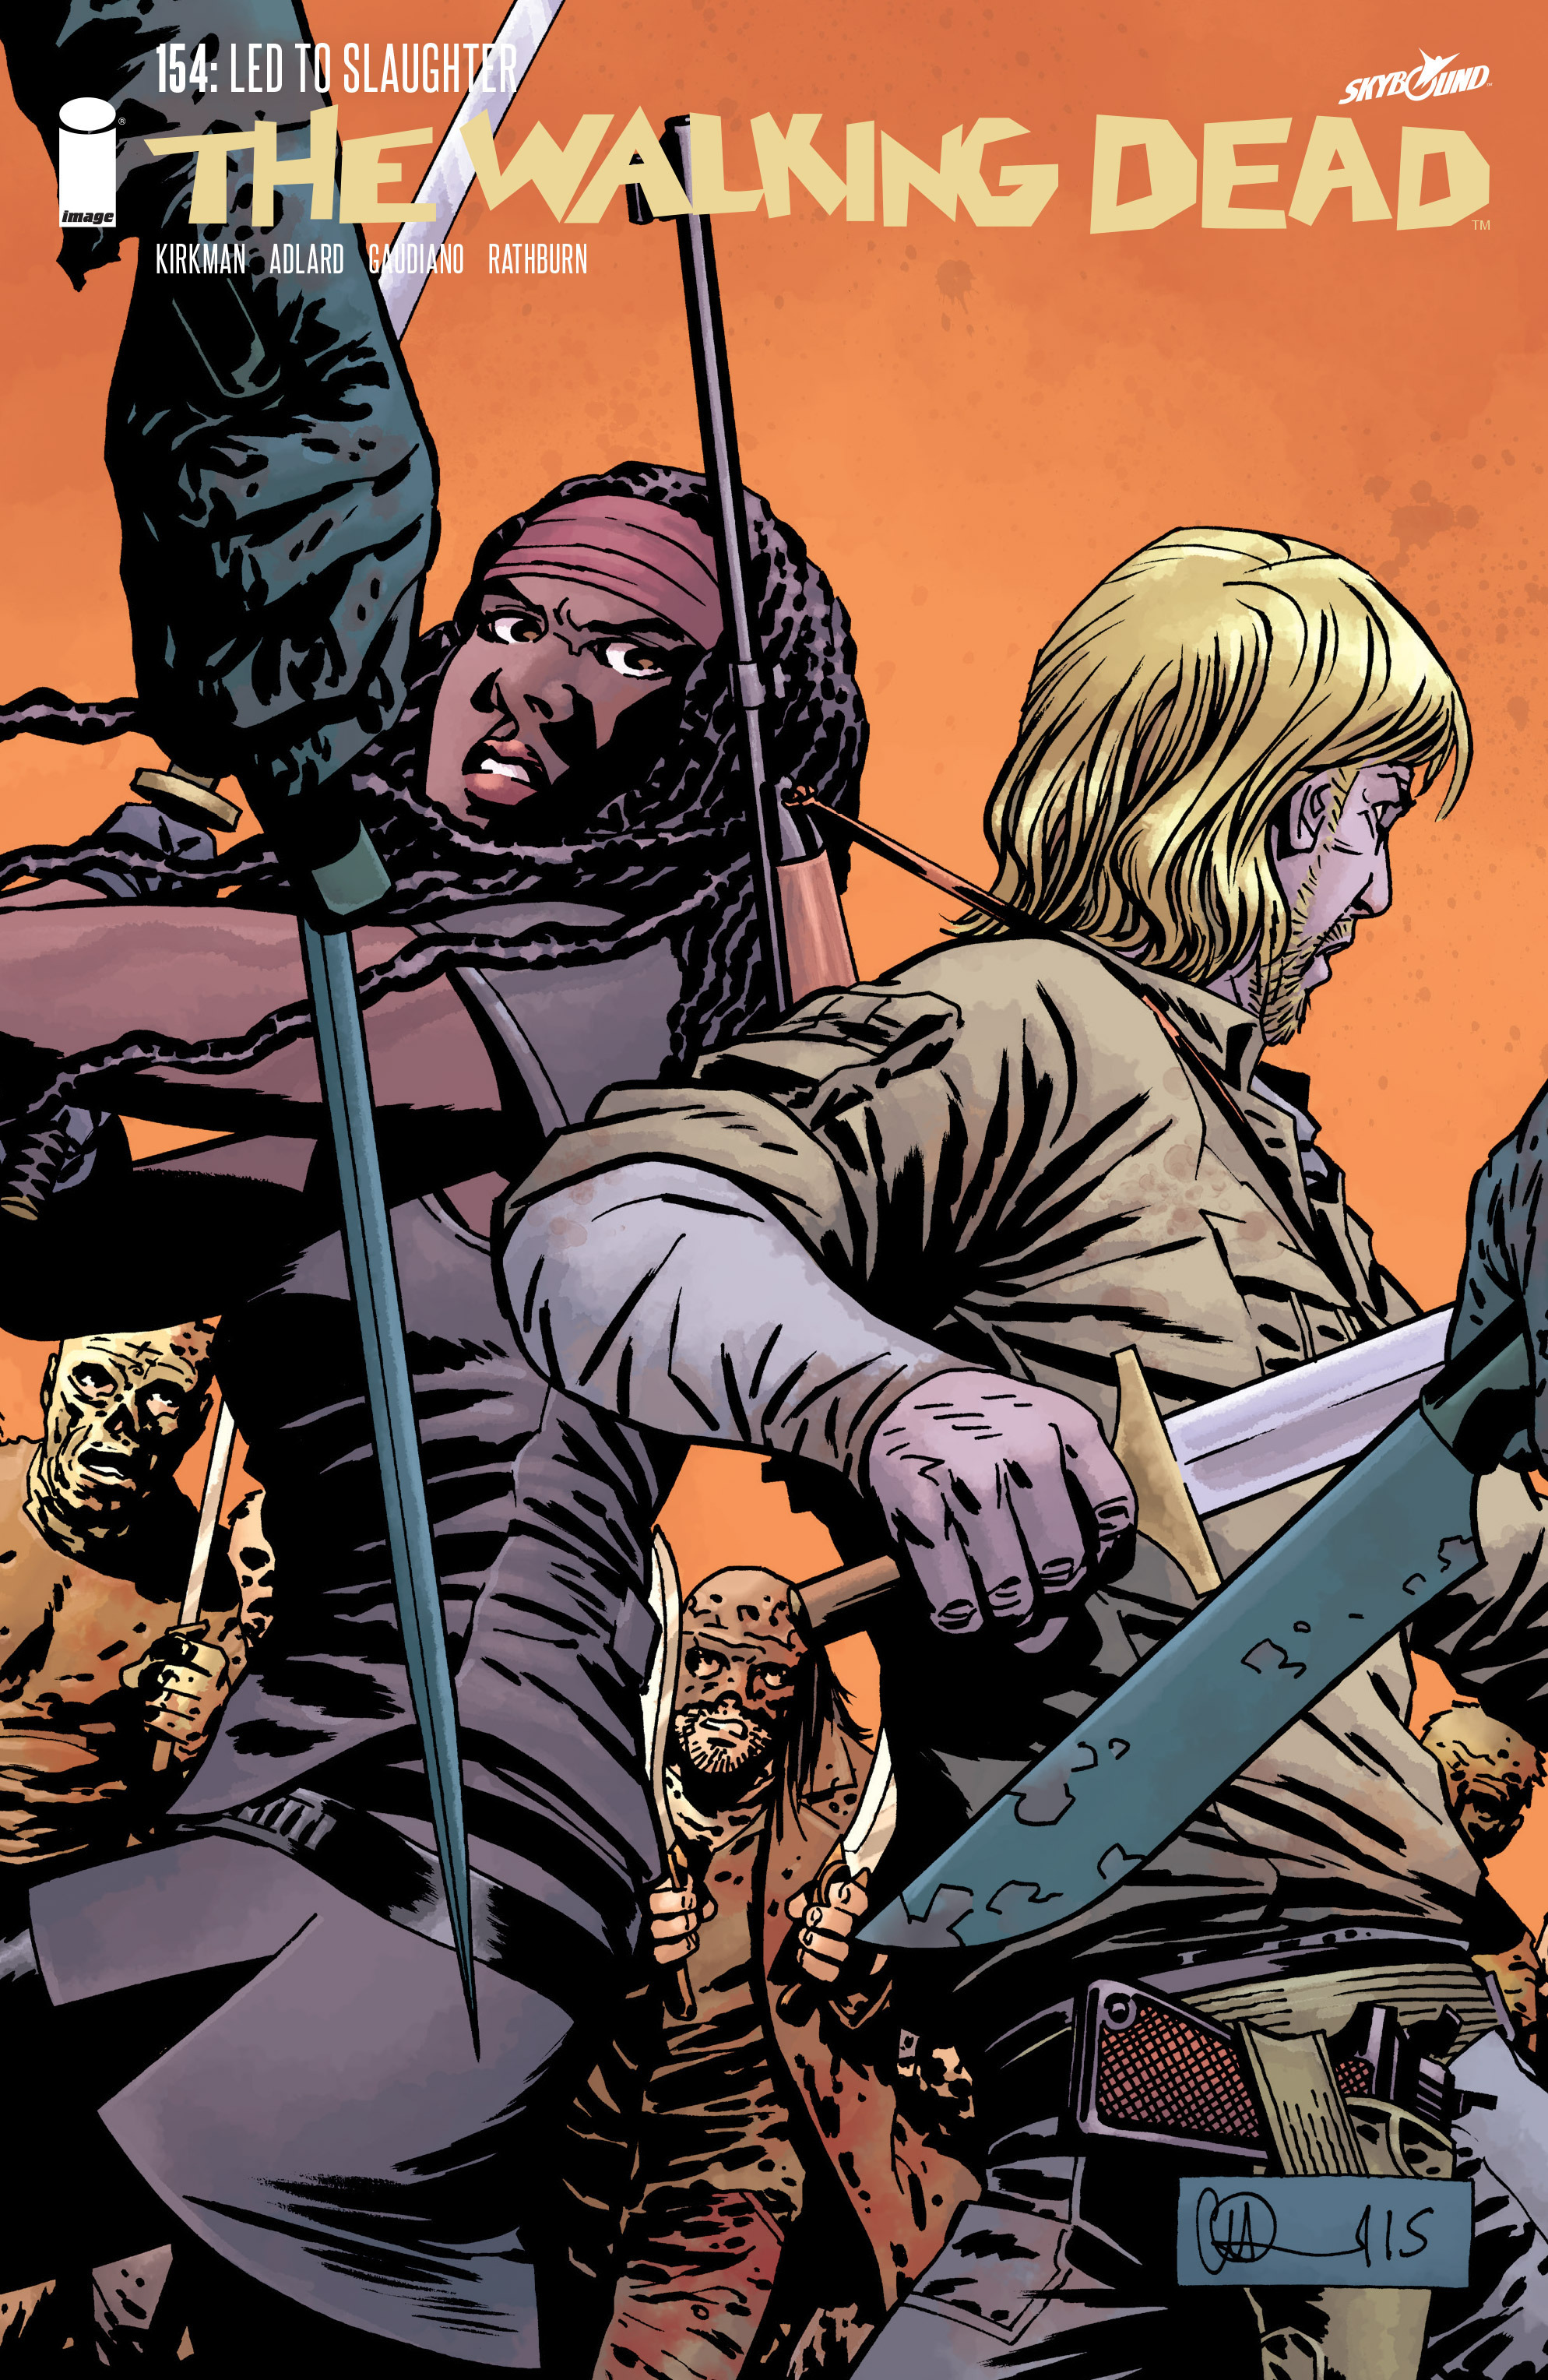 The Walking Dead 154 Page 1